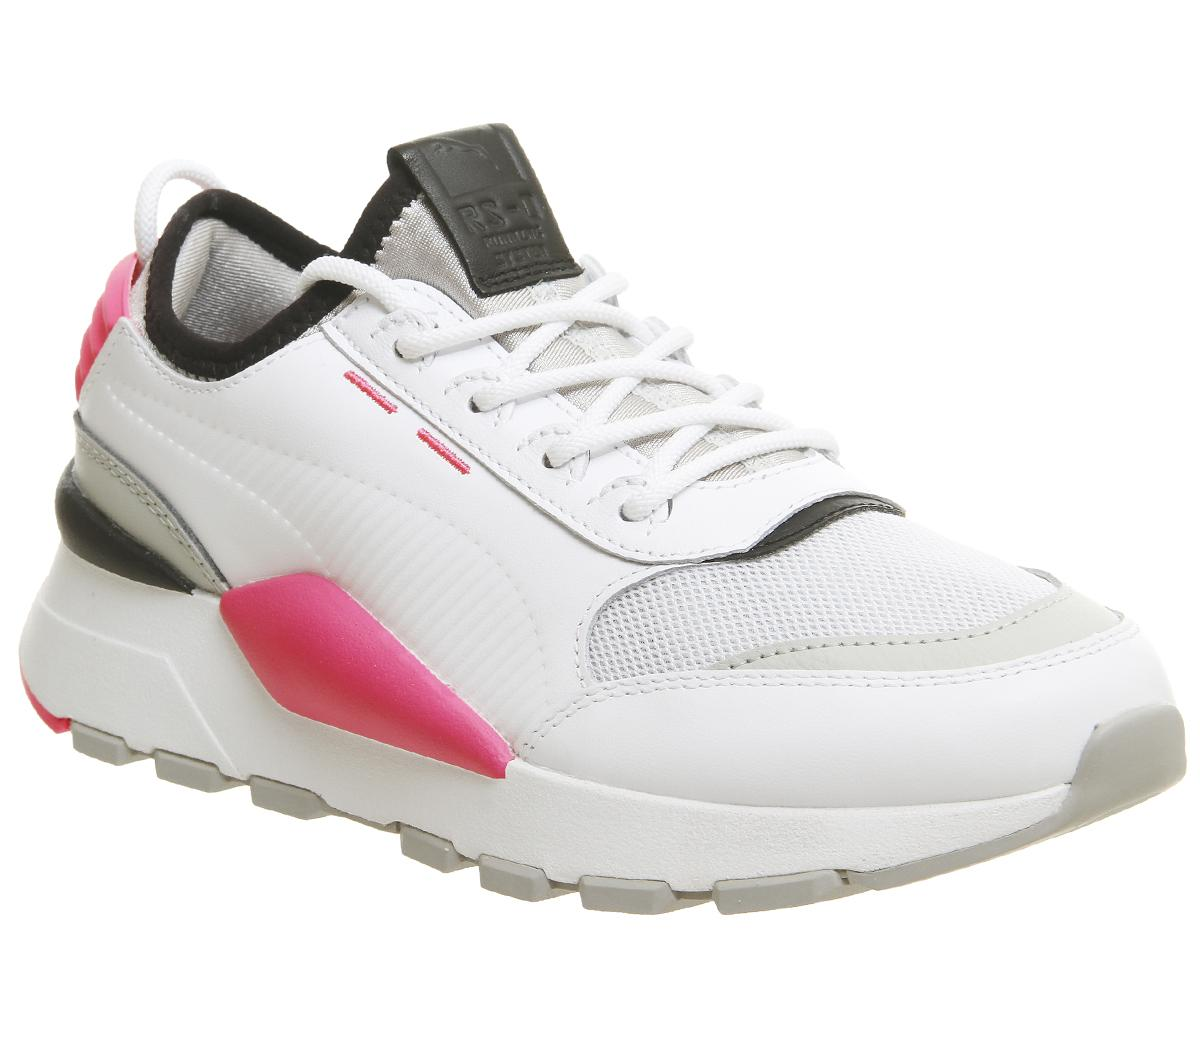 Puma Rs-0 Sound Trainers Puma White Grey Knockout Pink - Sneaker damen